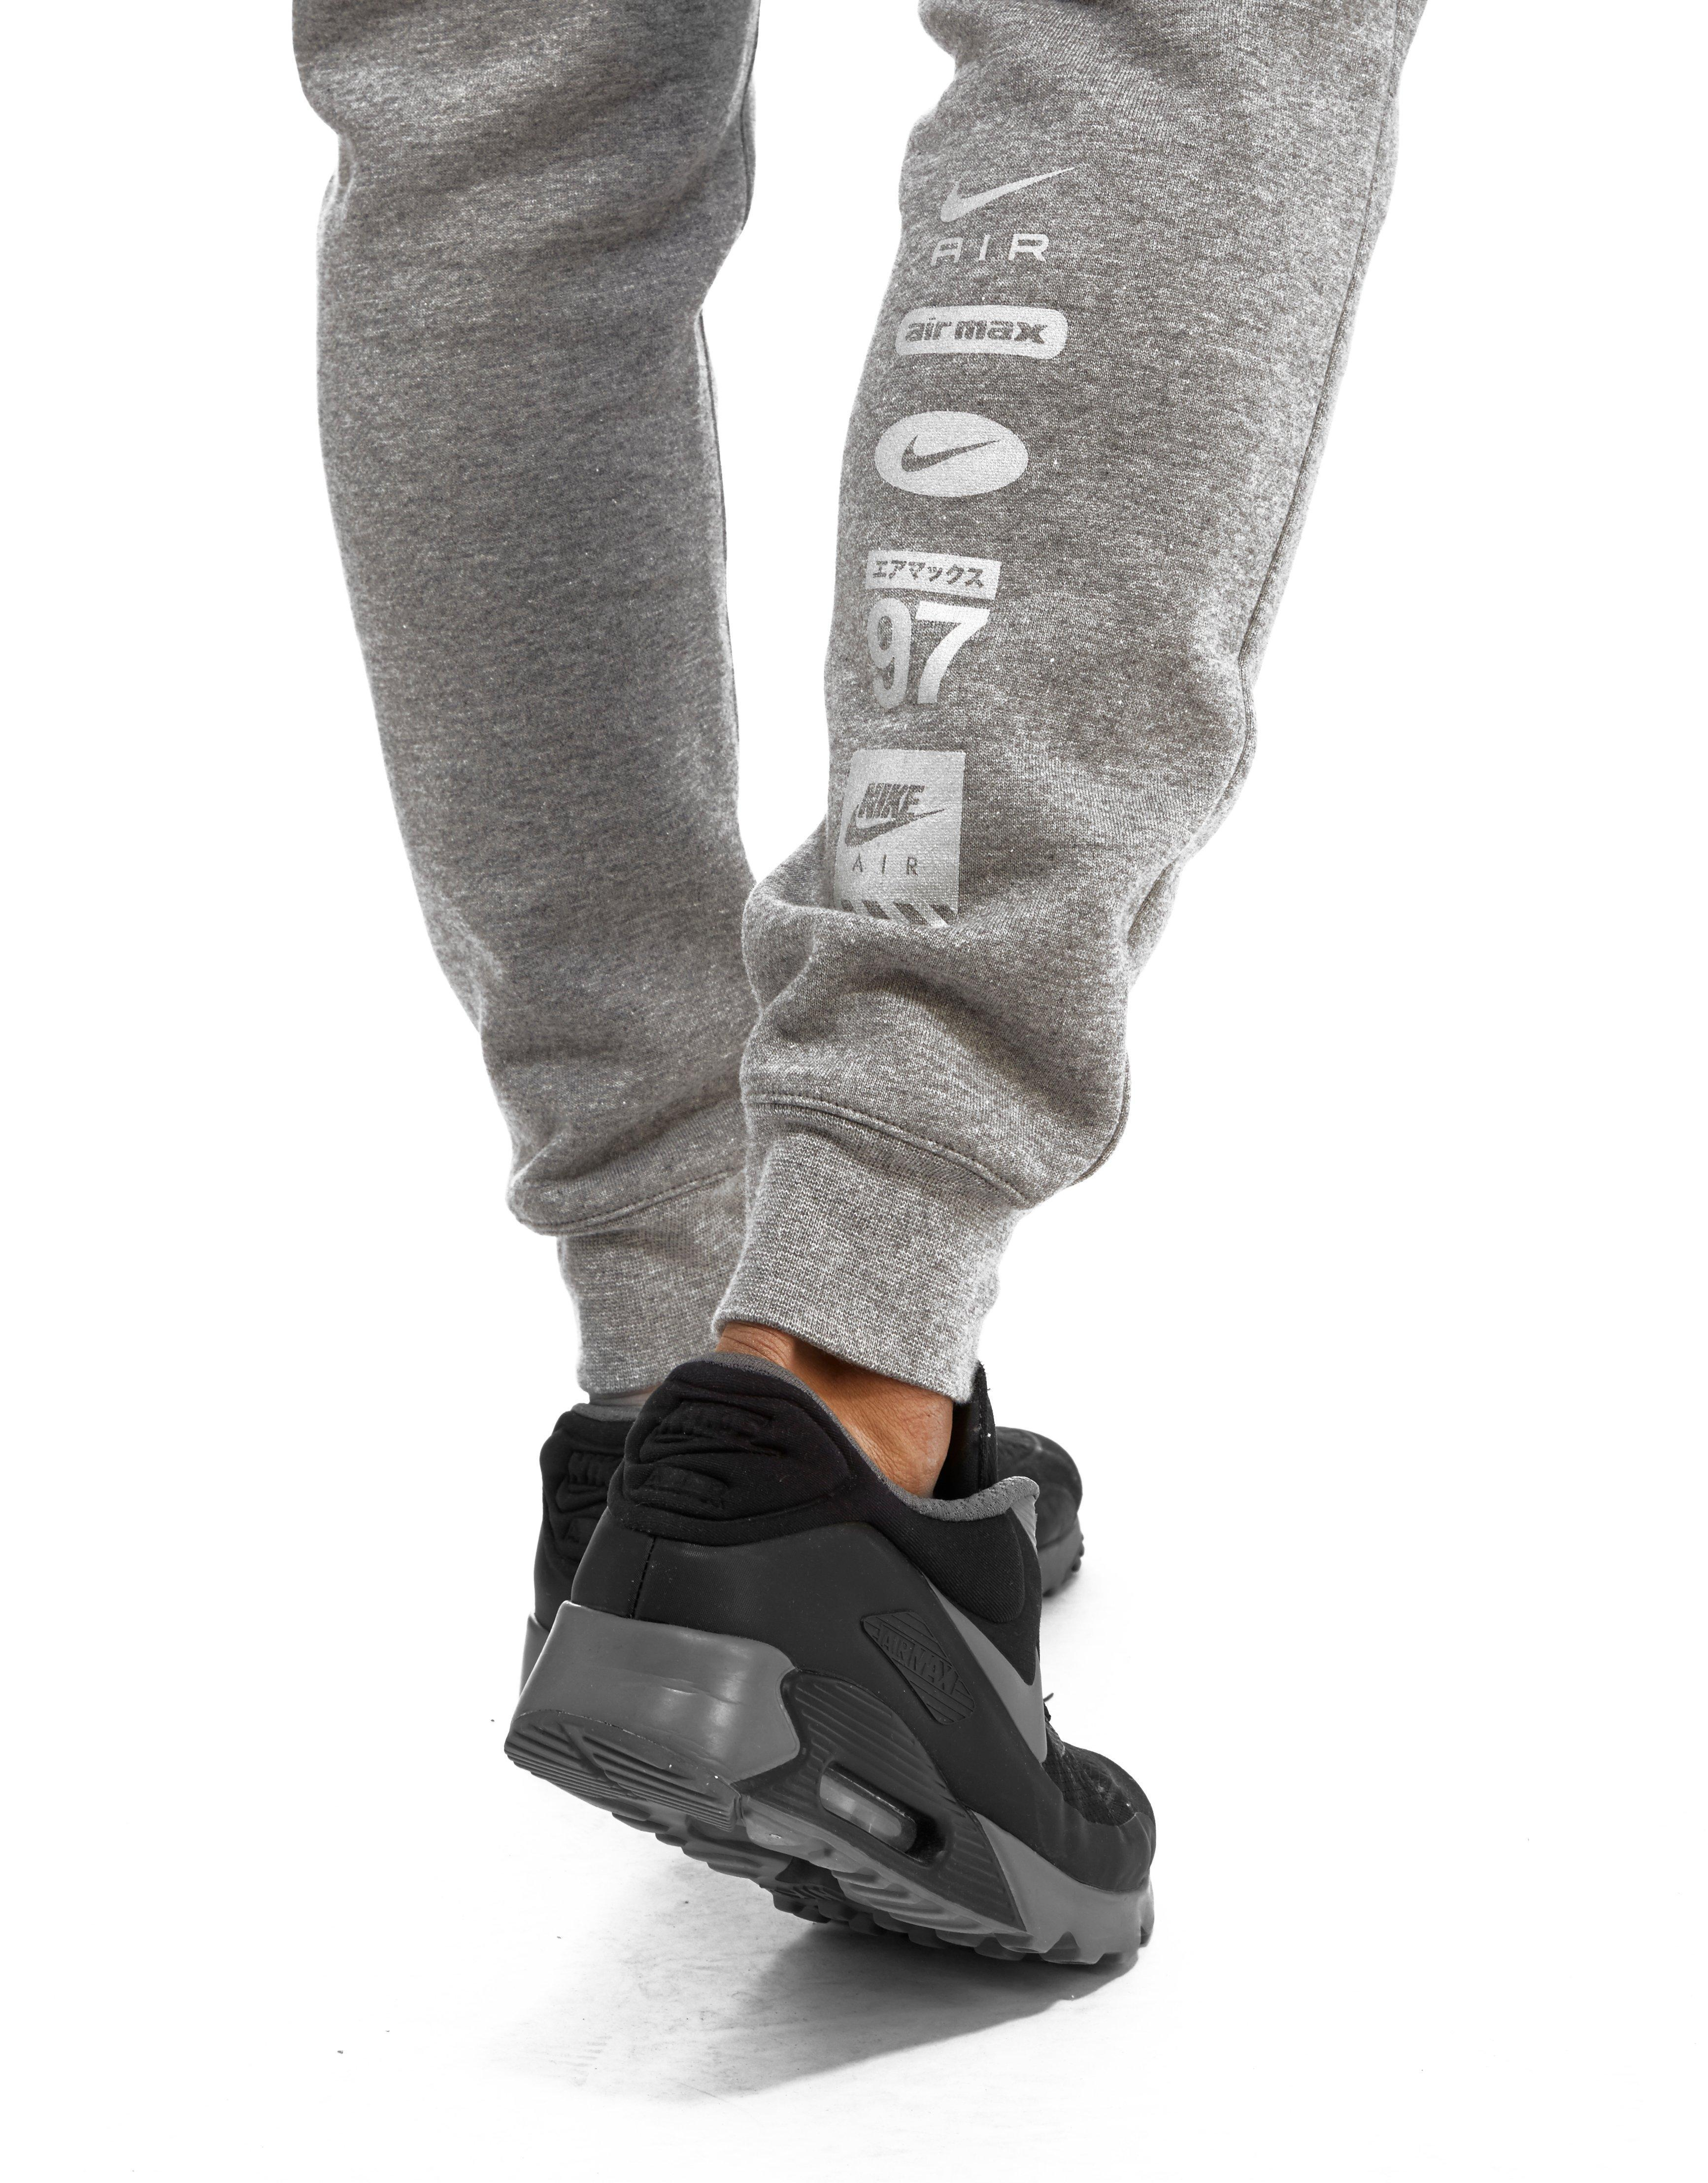 ab9d82a96828e Nike Air Hybrid Jogging Pants in Gray for Men - Lyst